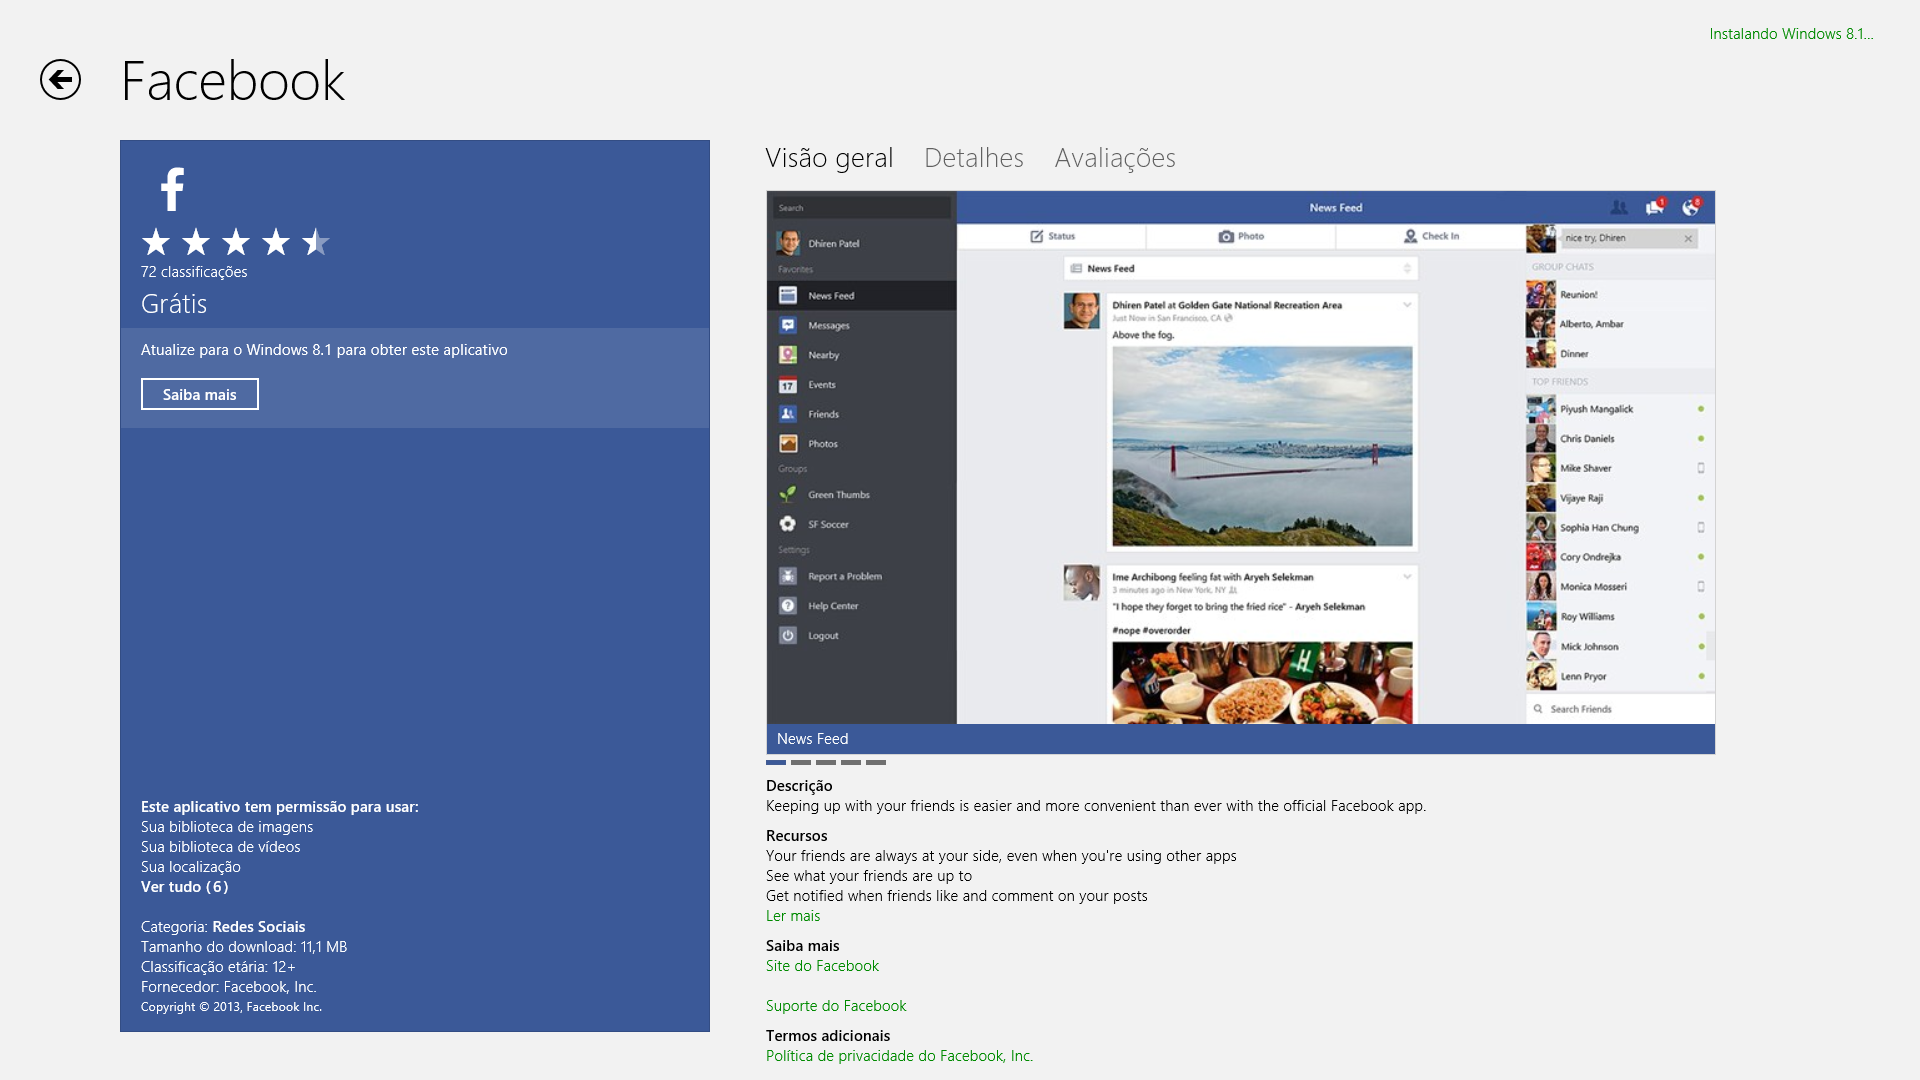 facebook windows 81